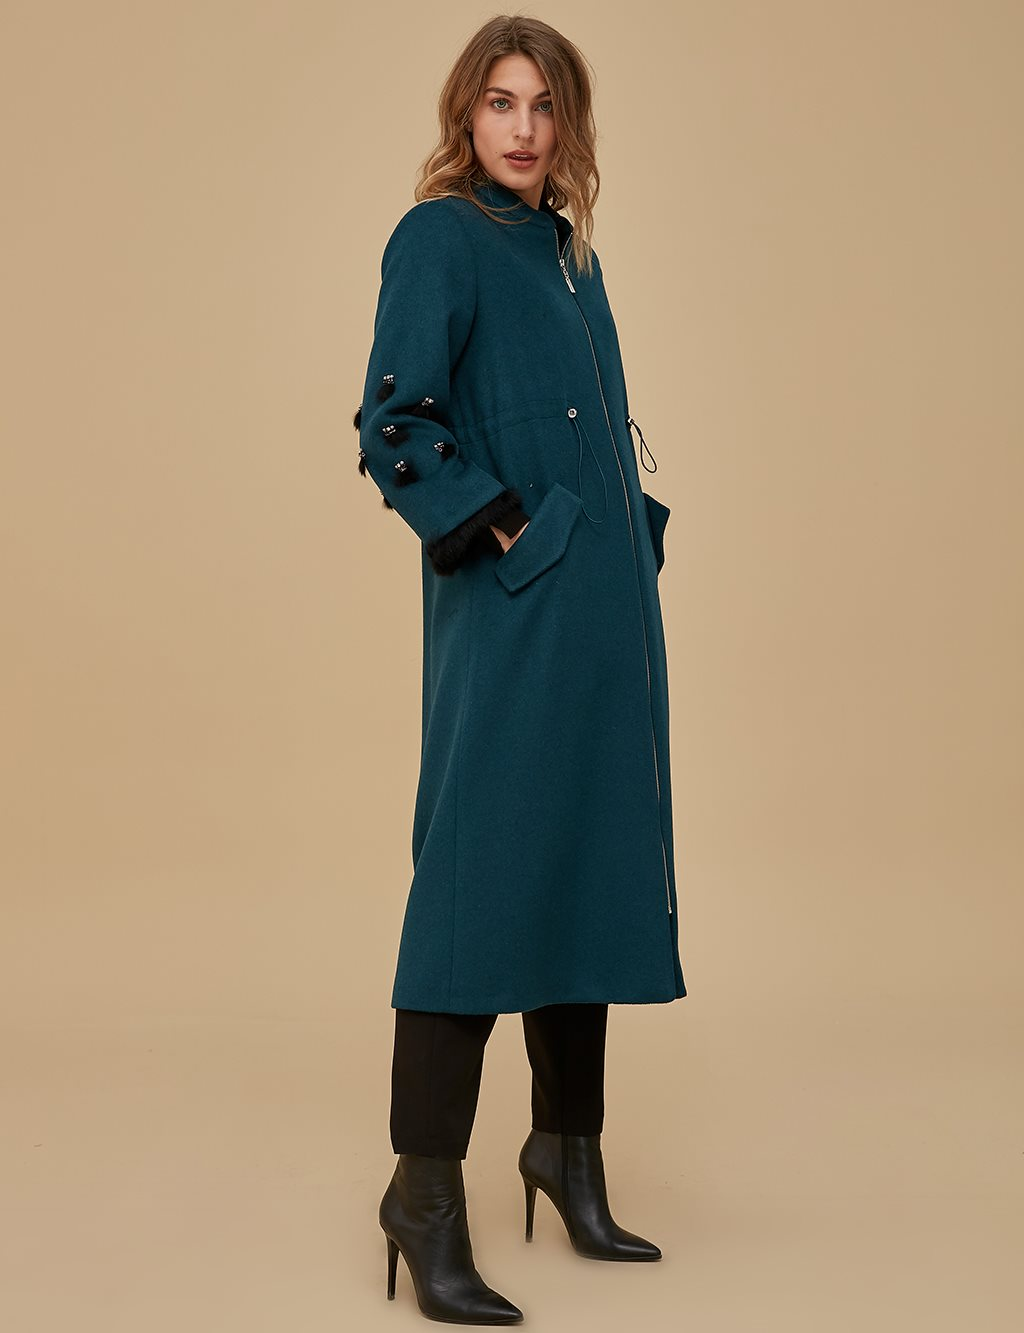 Ruched Coat A9 25080 Indigo